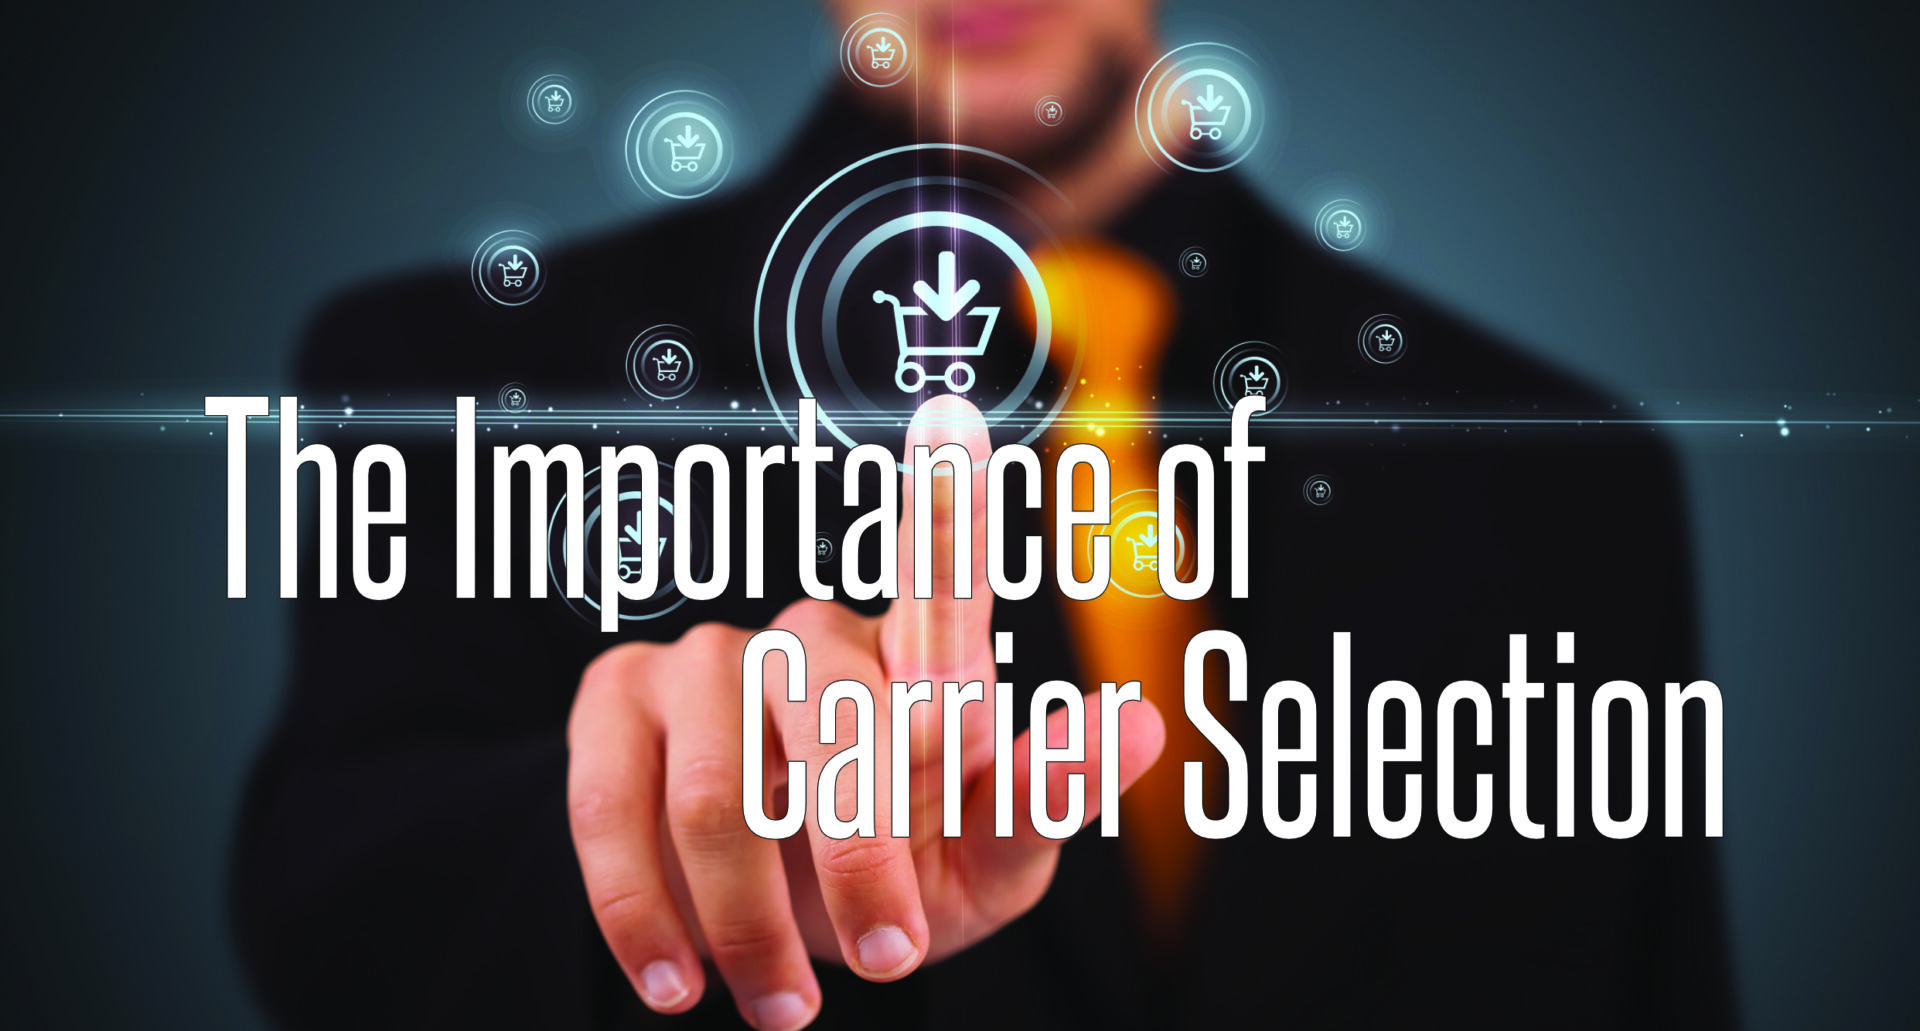 Carrier Selection